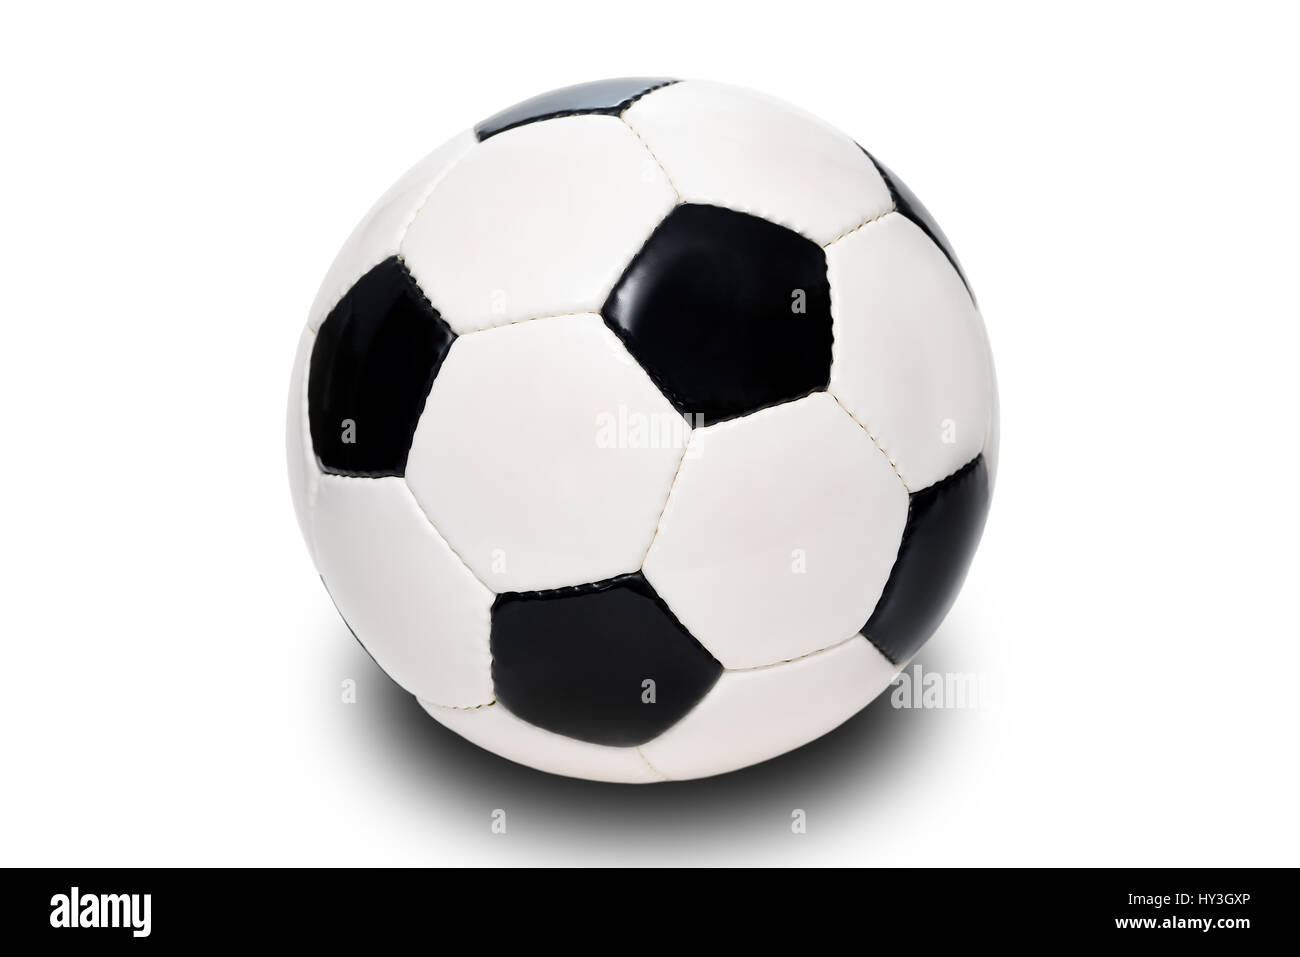 Black-and-white leather football, Germany, Hamburg, , Schwarz-weißer Lederfussball, Deutschland - Stock Image